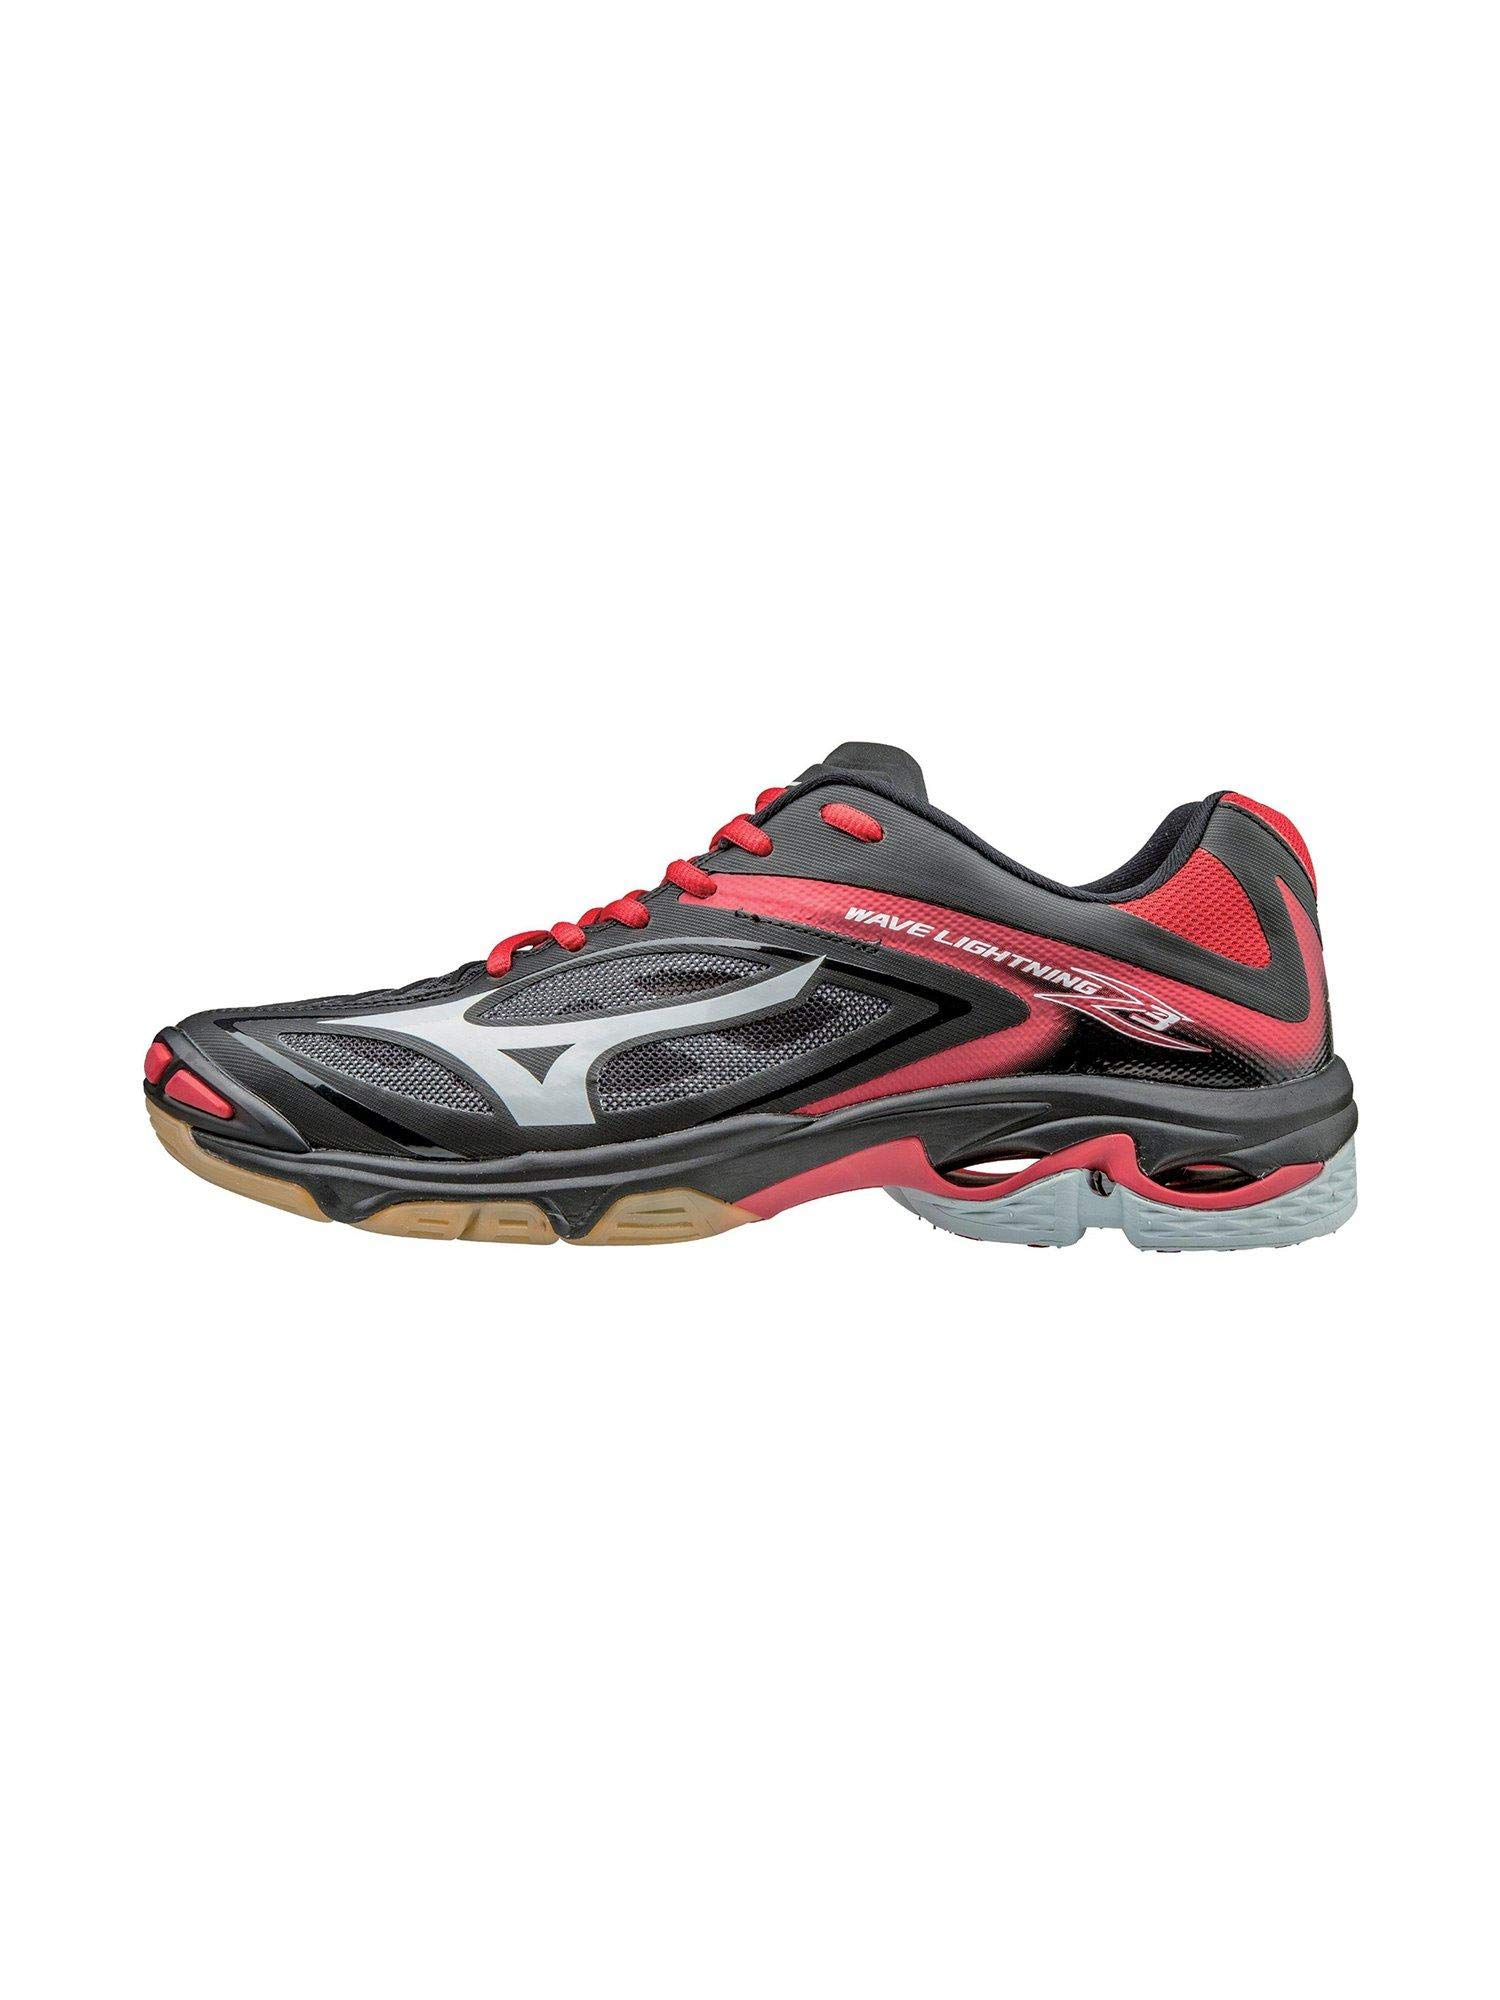 Mizuno Women's Wave Lighting Z3 Volleyball Shoe,Black/Red,8.5 B US